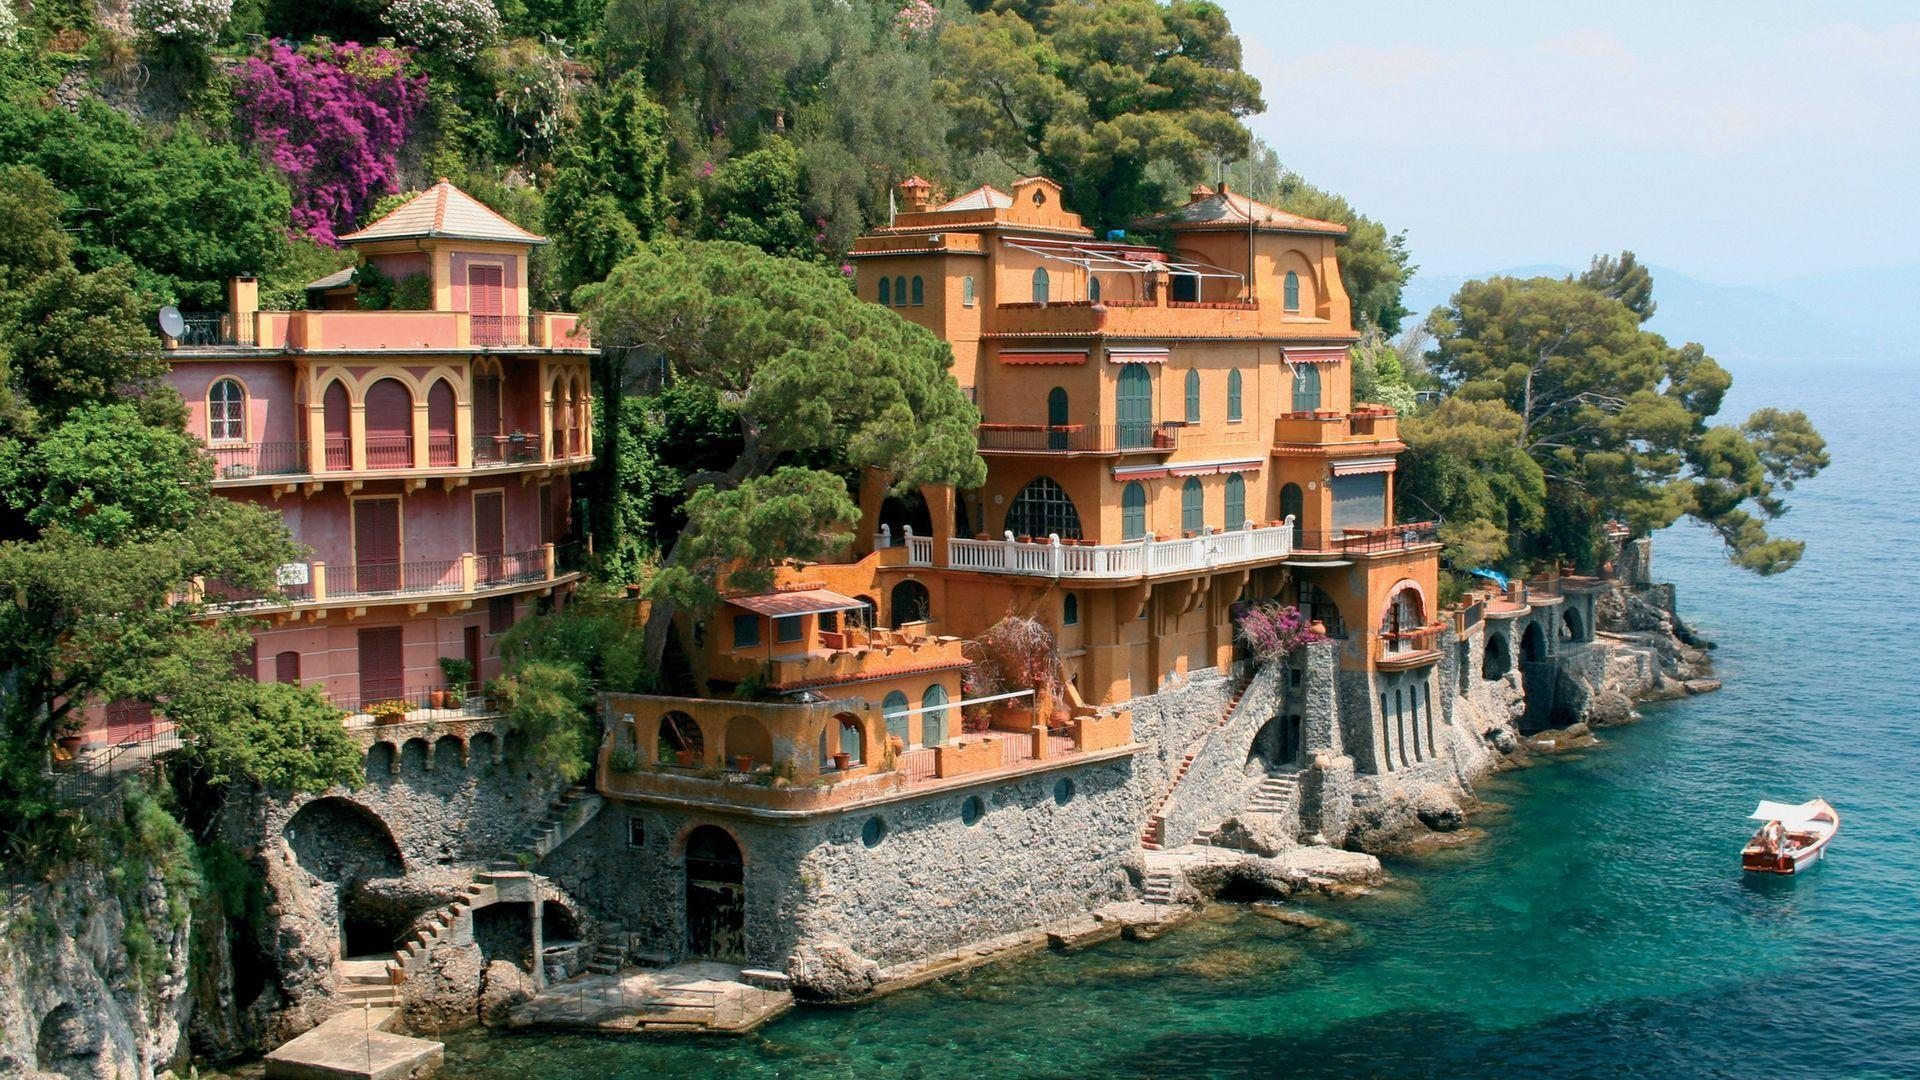 Portofino Genoa Italy World Desktop Wallpaper